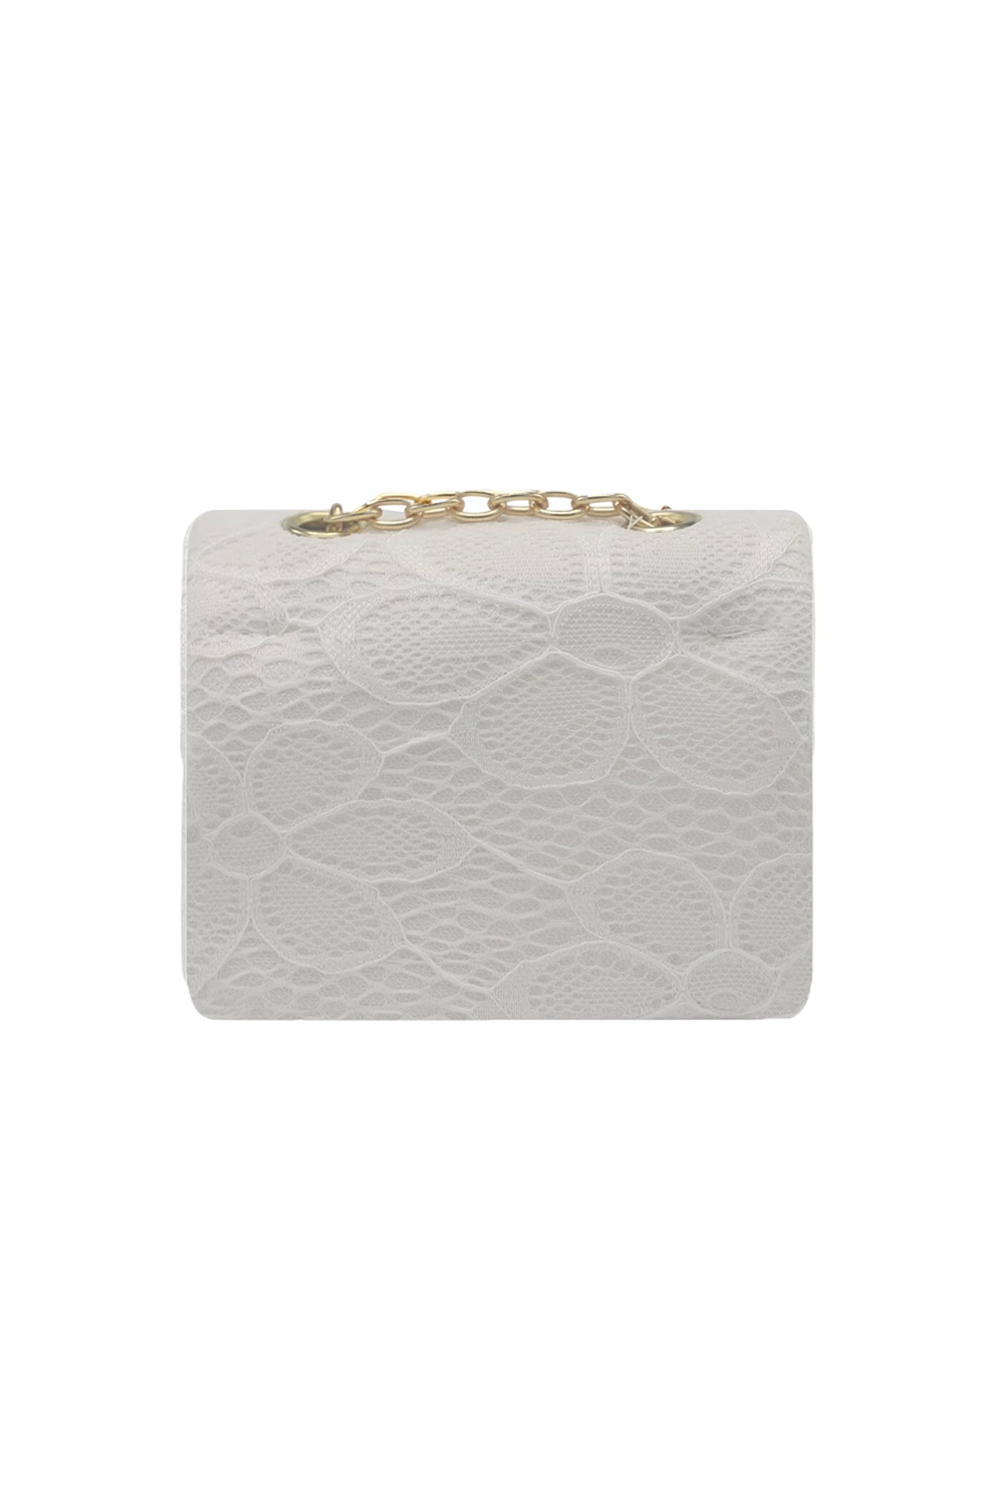 White Lace Floral Clutch